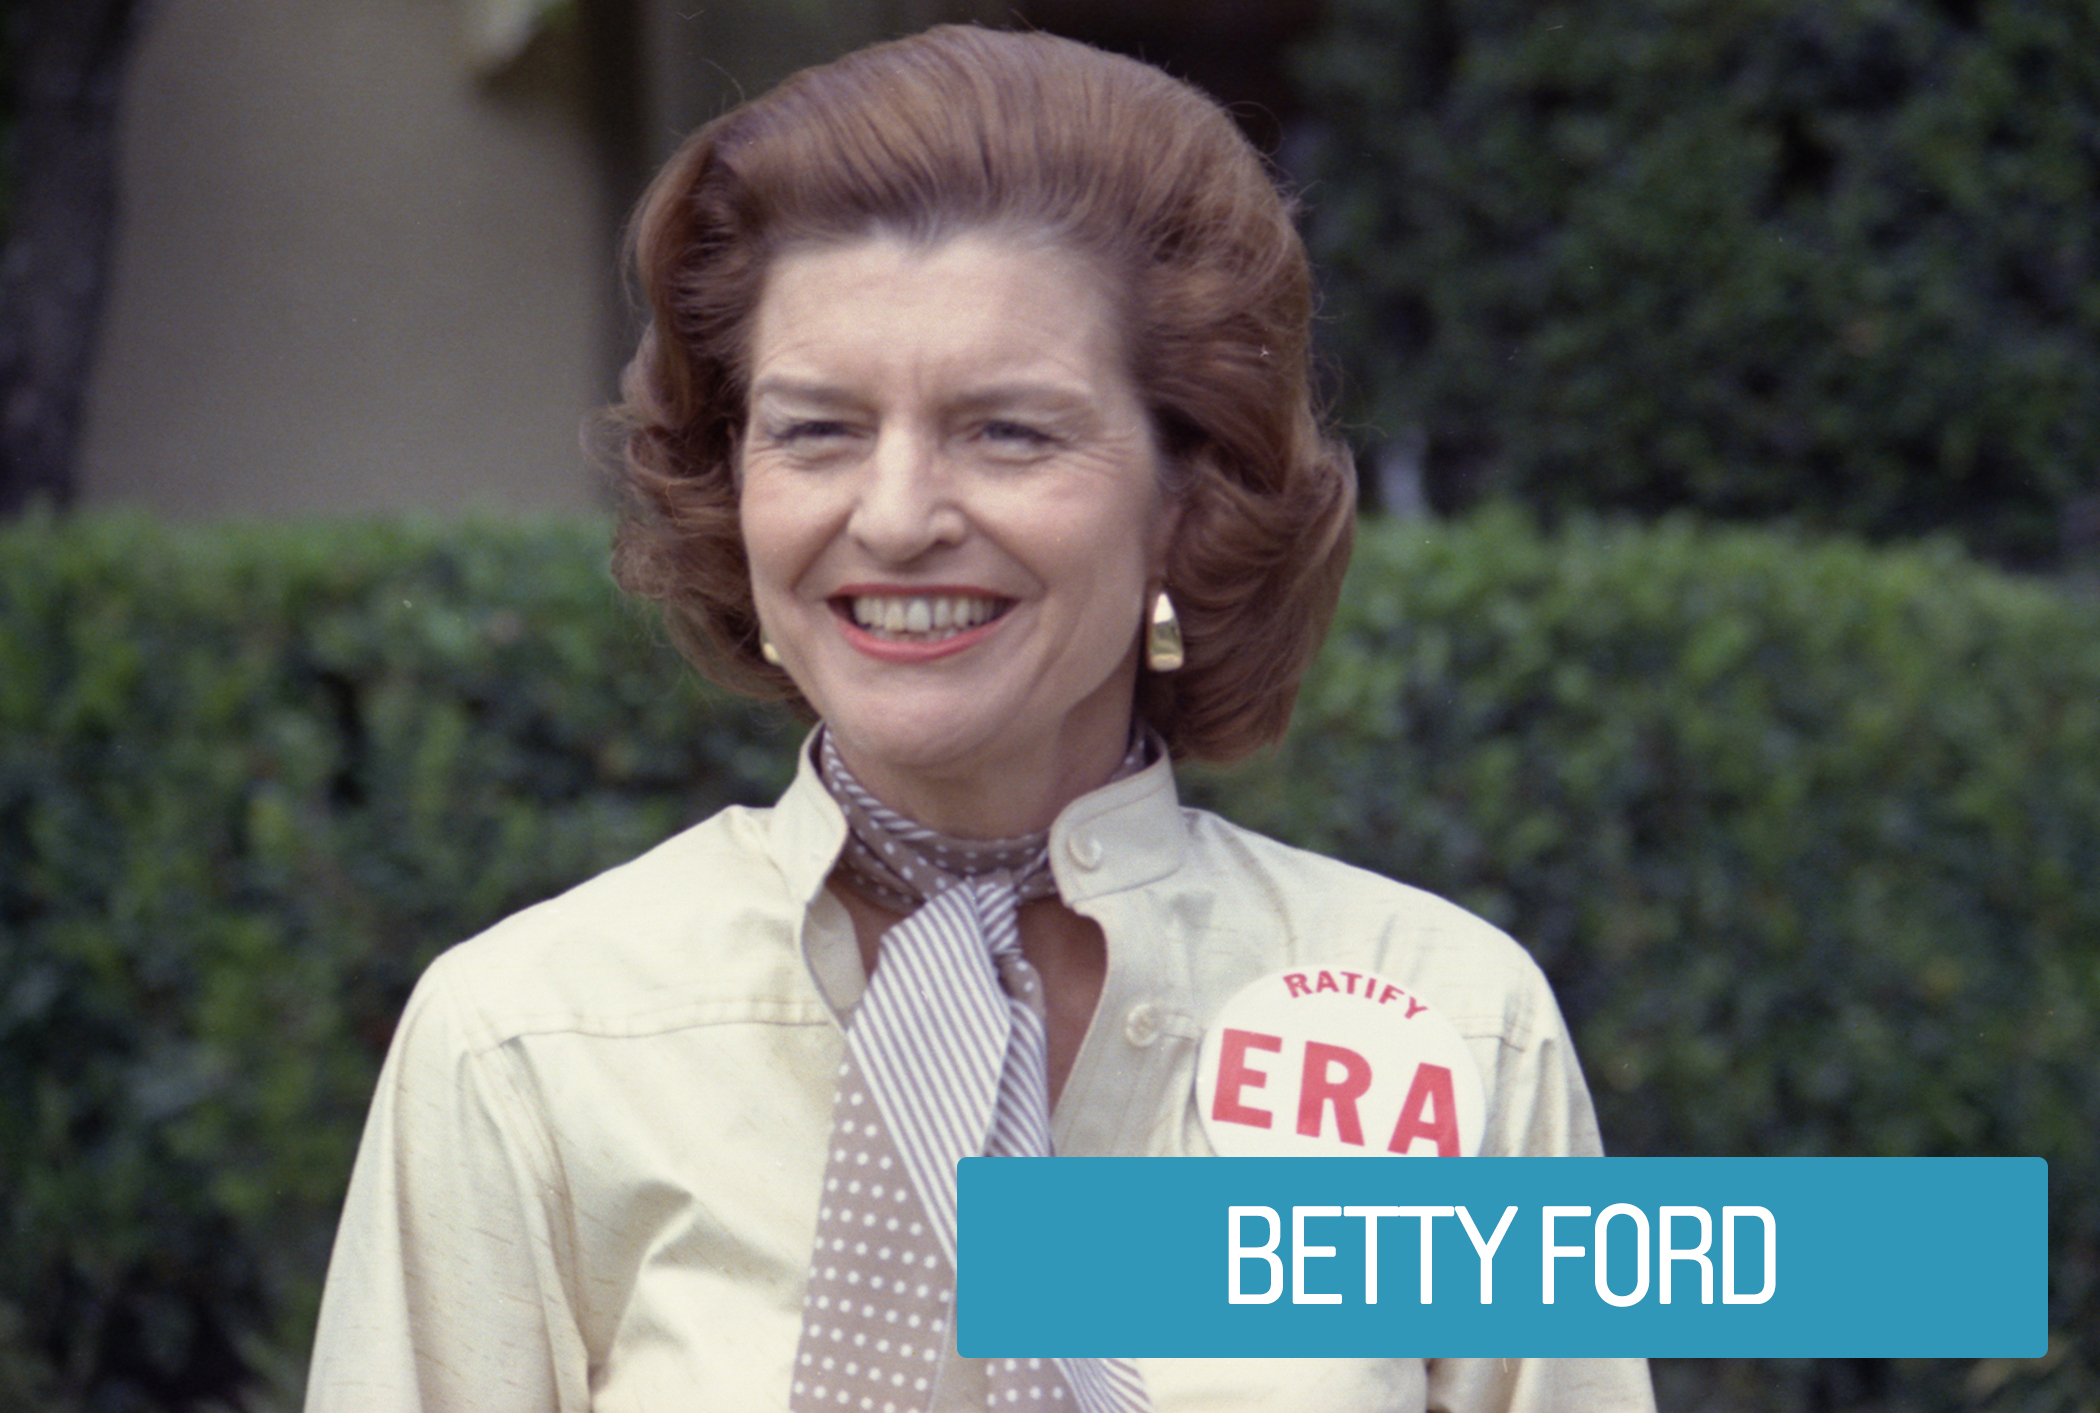 Betty Ford spent her White House years advocating for increased opportunities for women in society. Her work calling and lobbying members of state legislatures helped to ensure the eventual ratification the Equal Rights Amendment (ERA).  The ERA guaranteed equal rights to women under federal, state and local laws.